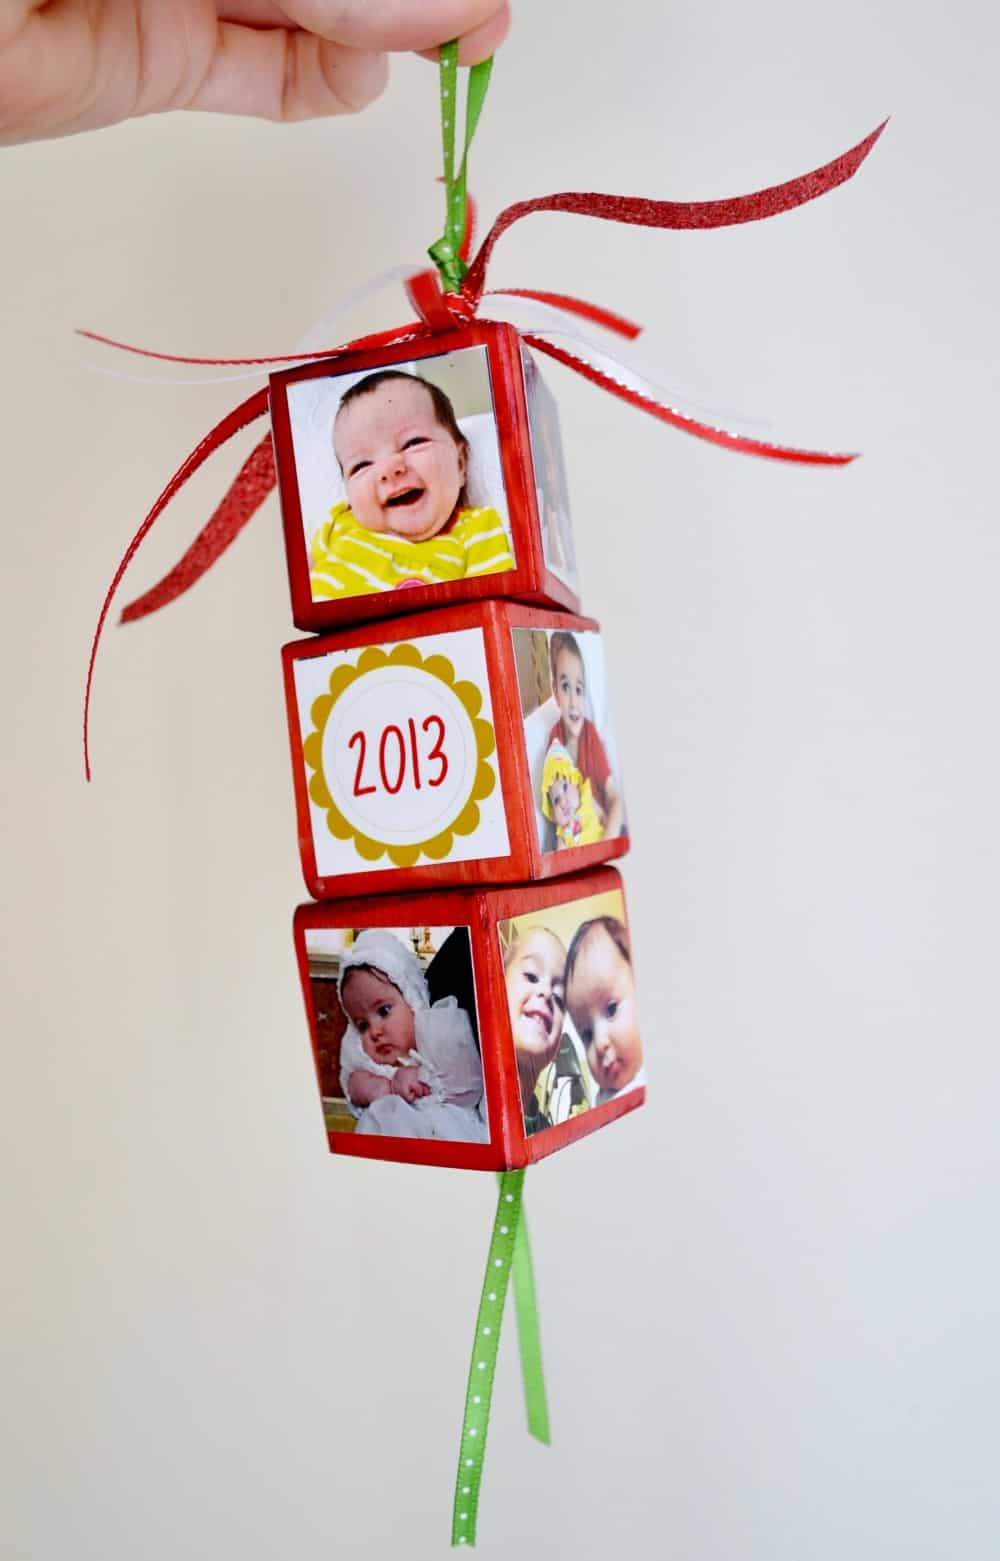 Create festive, personalized Christmas ornaments using your favorite photos, wood blocks and Mod Podge. These make great gifts!